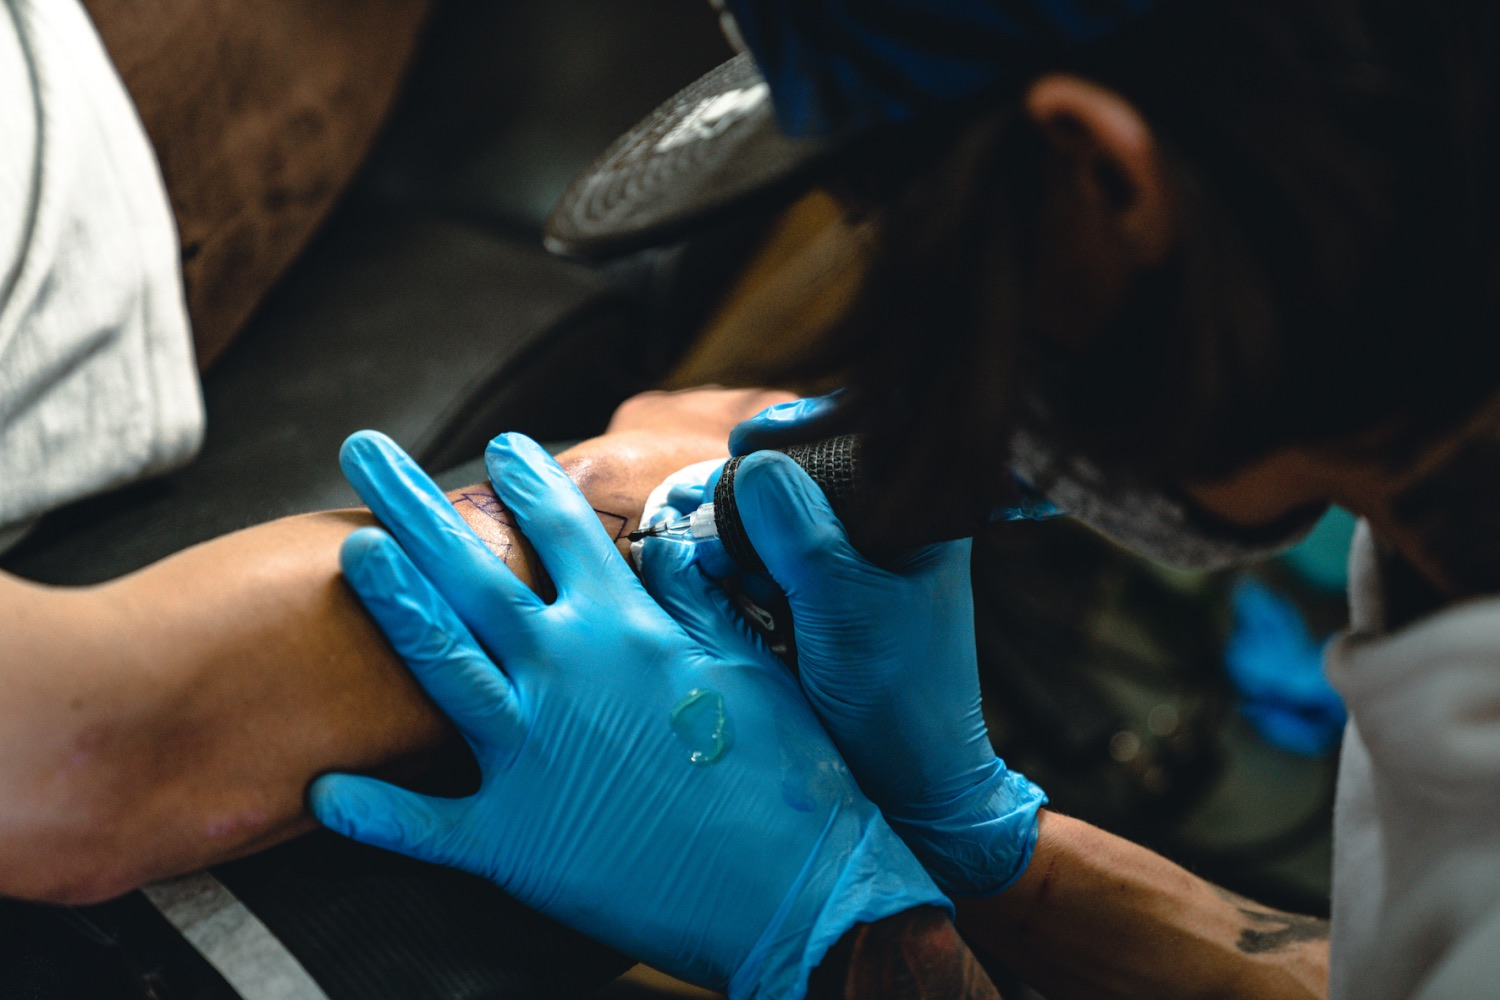 Interview with tattoo artist James Rype